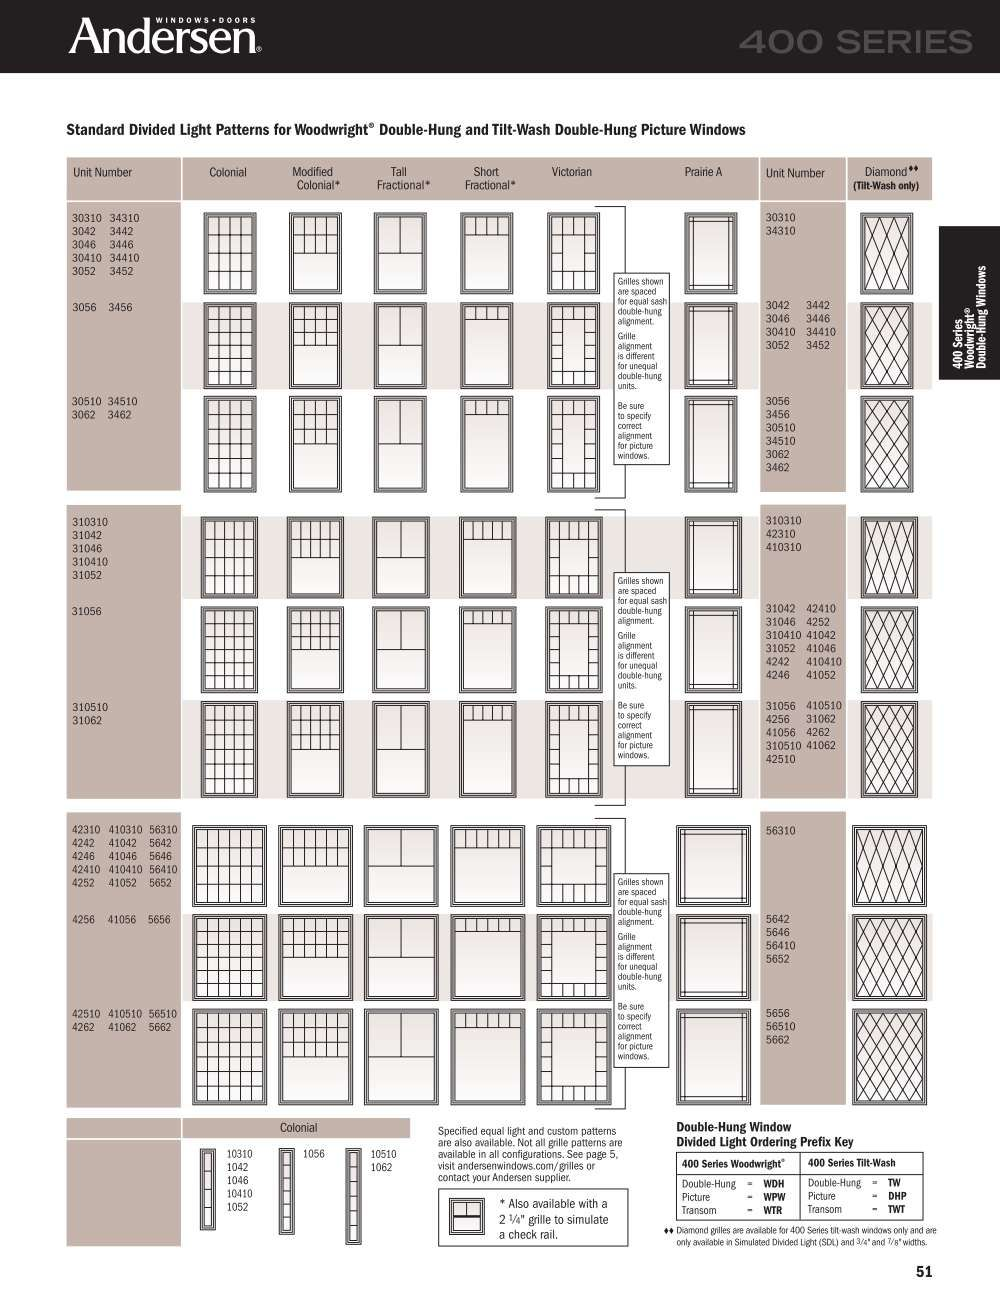 Standard casement window sizes chart image - Andersen Woodwright Double Hung Windows